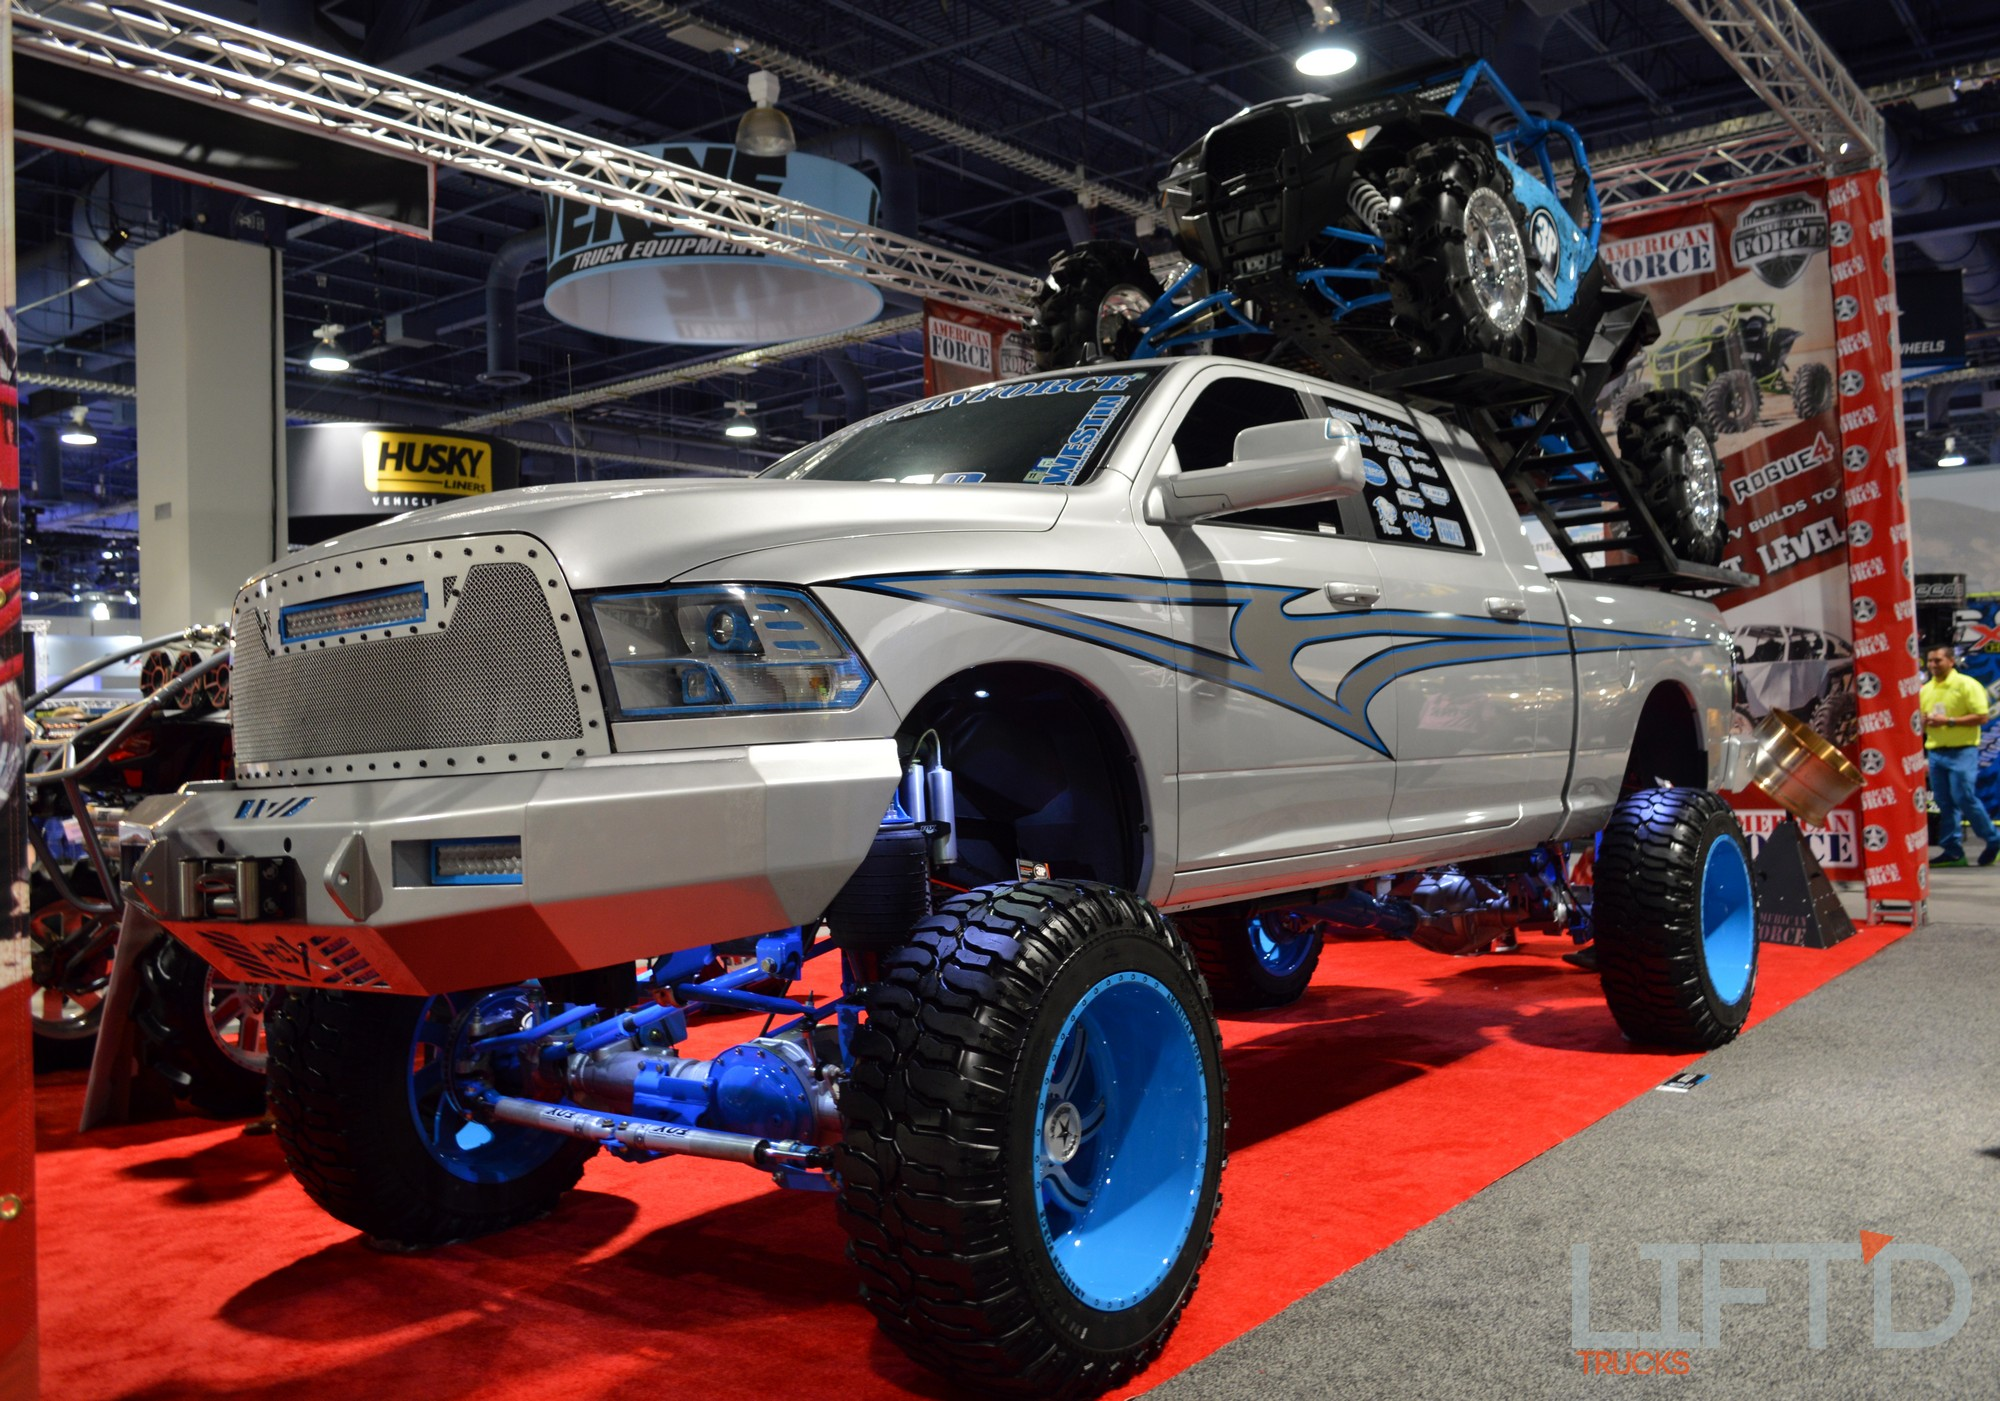 SEMA 2015 Top 10 Lift d Trucks From SEMA – Lift d Trucks